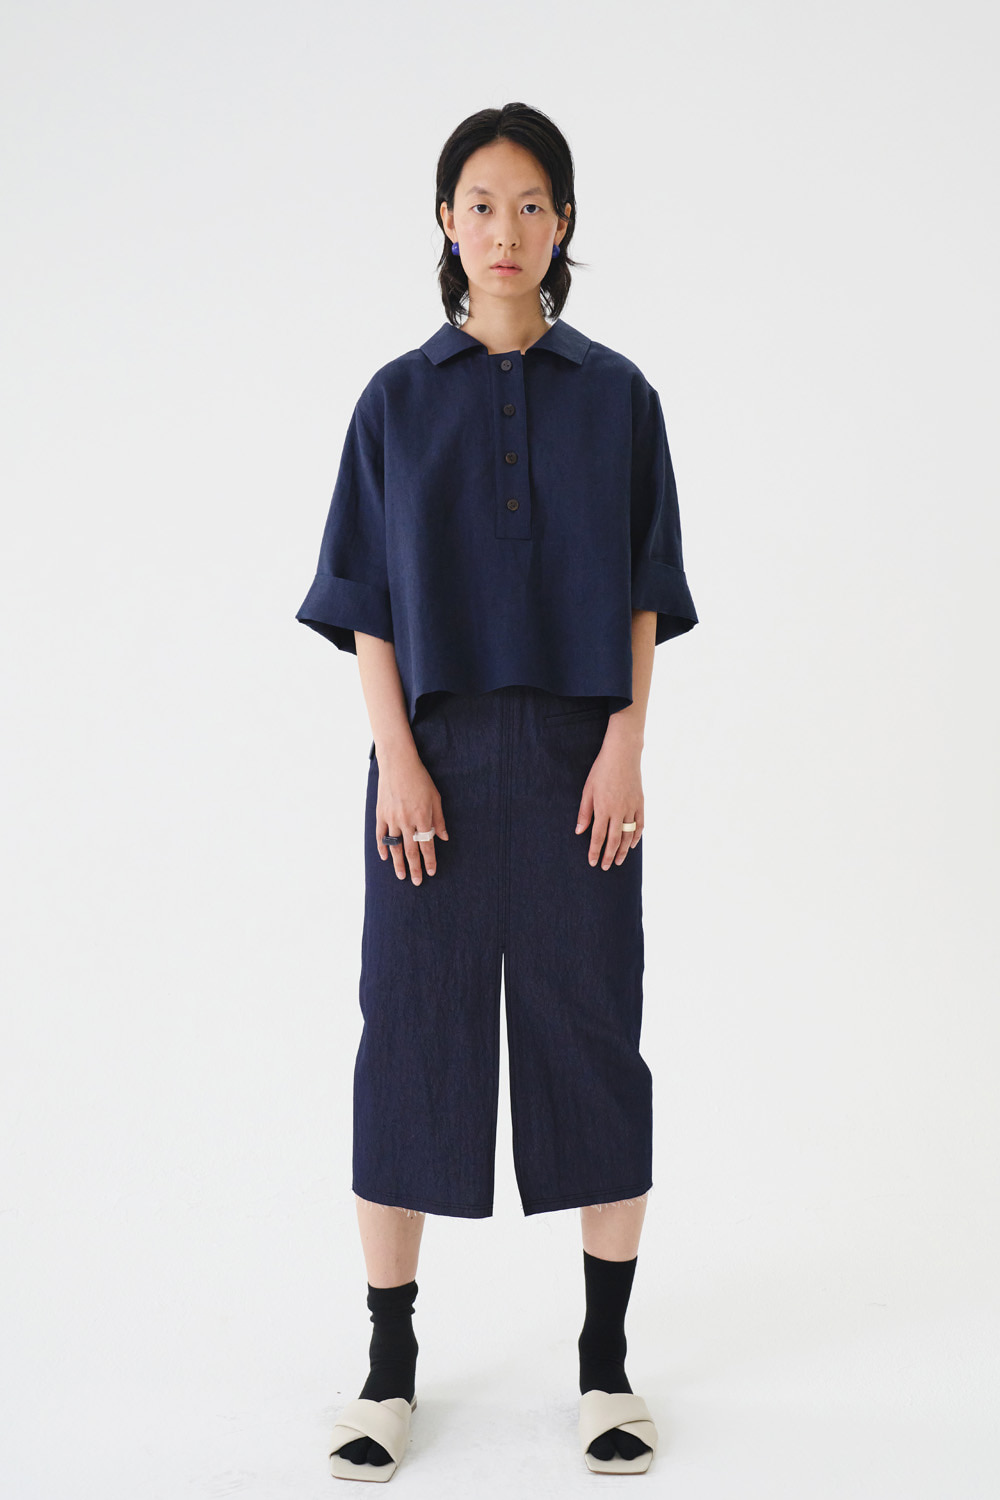 Skirt Denim Slit Indigo Navy